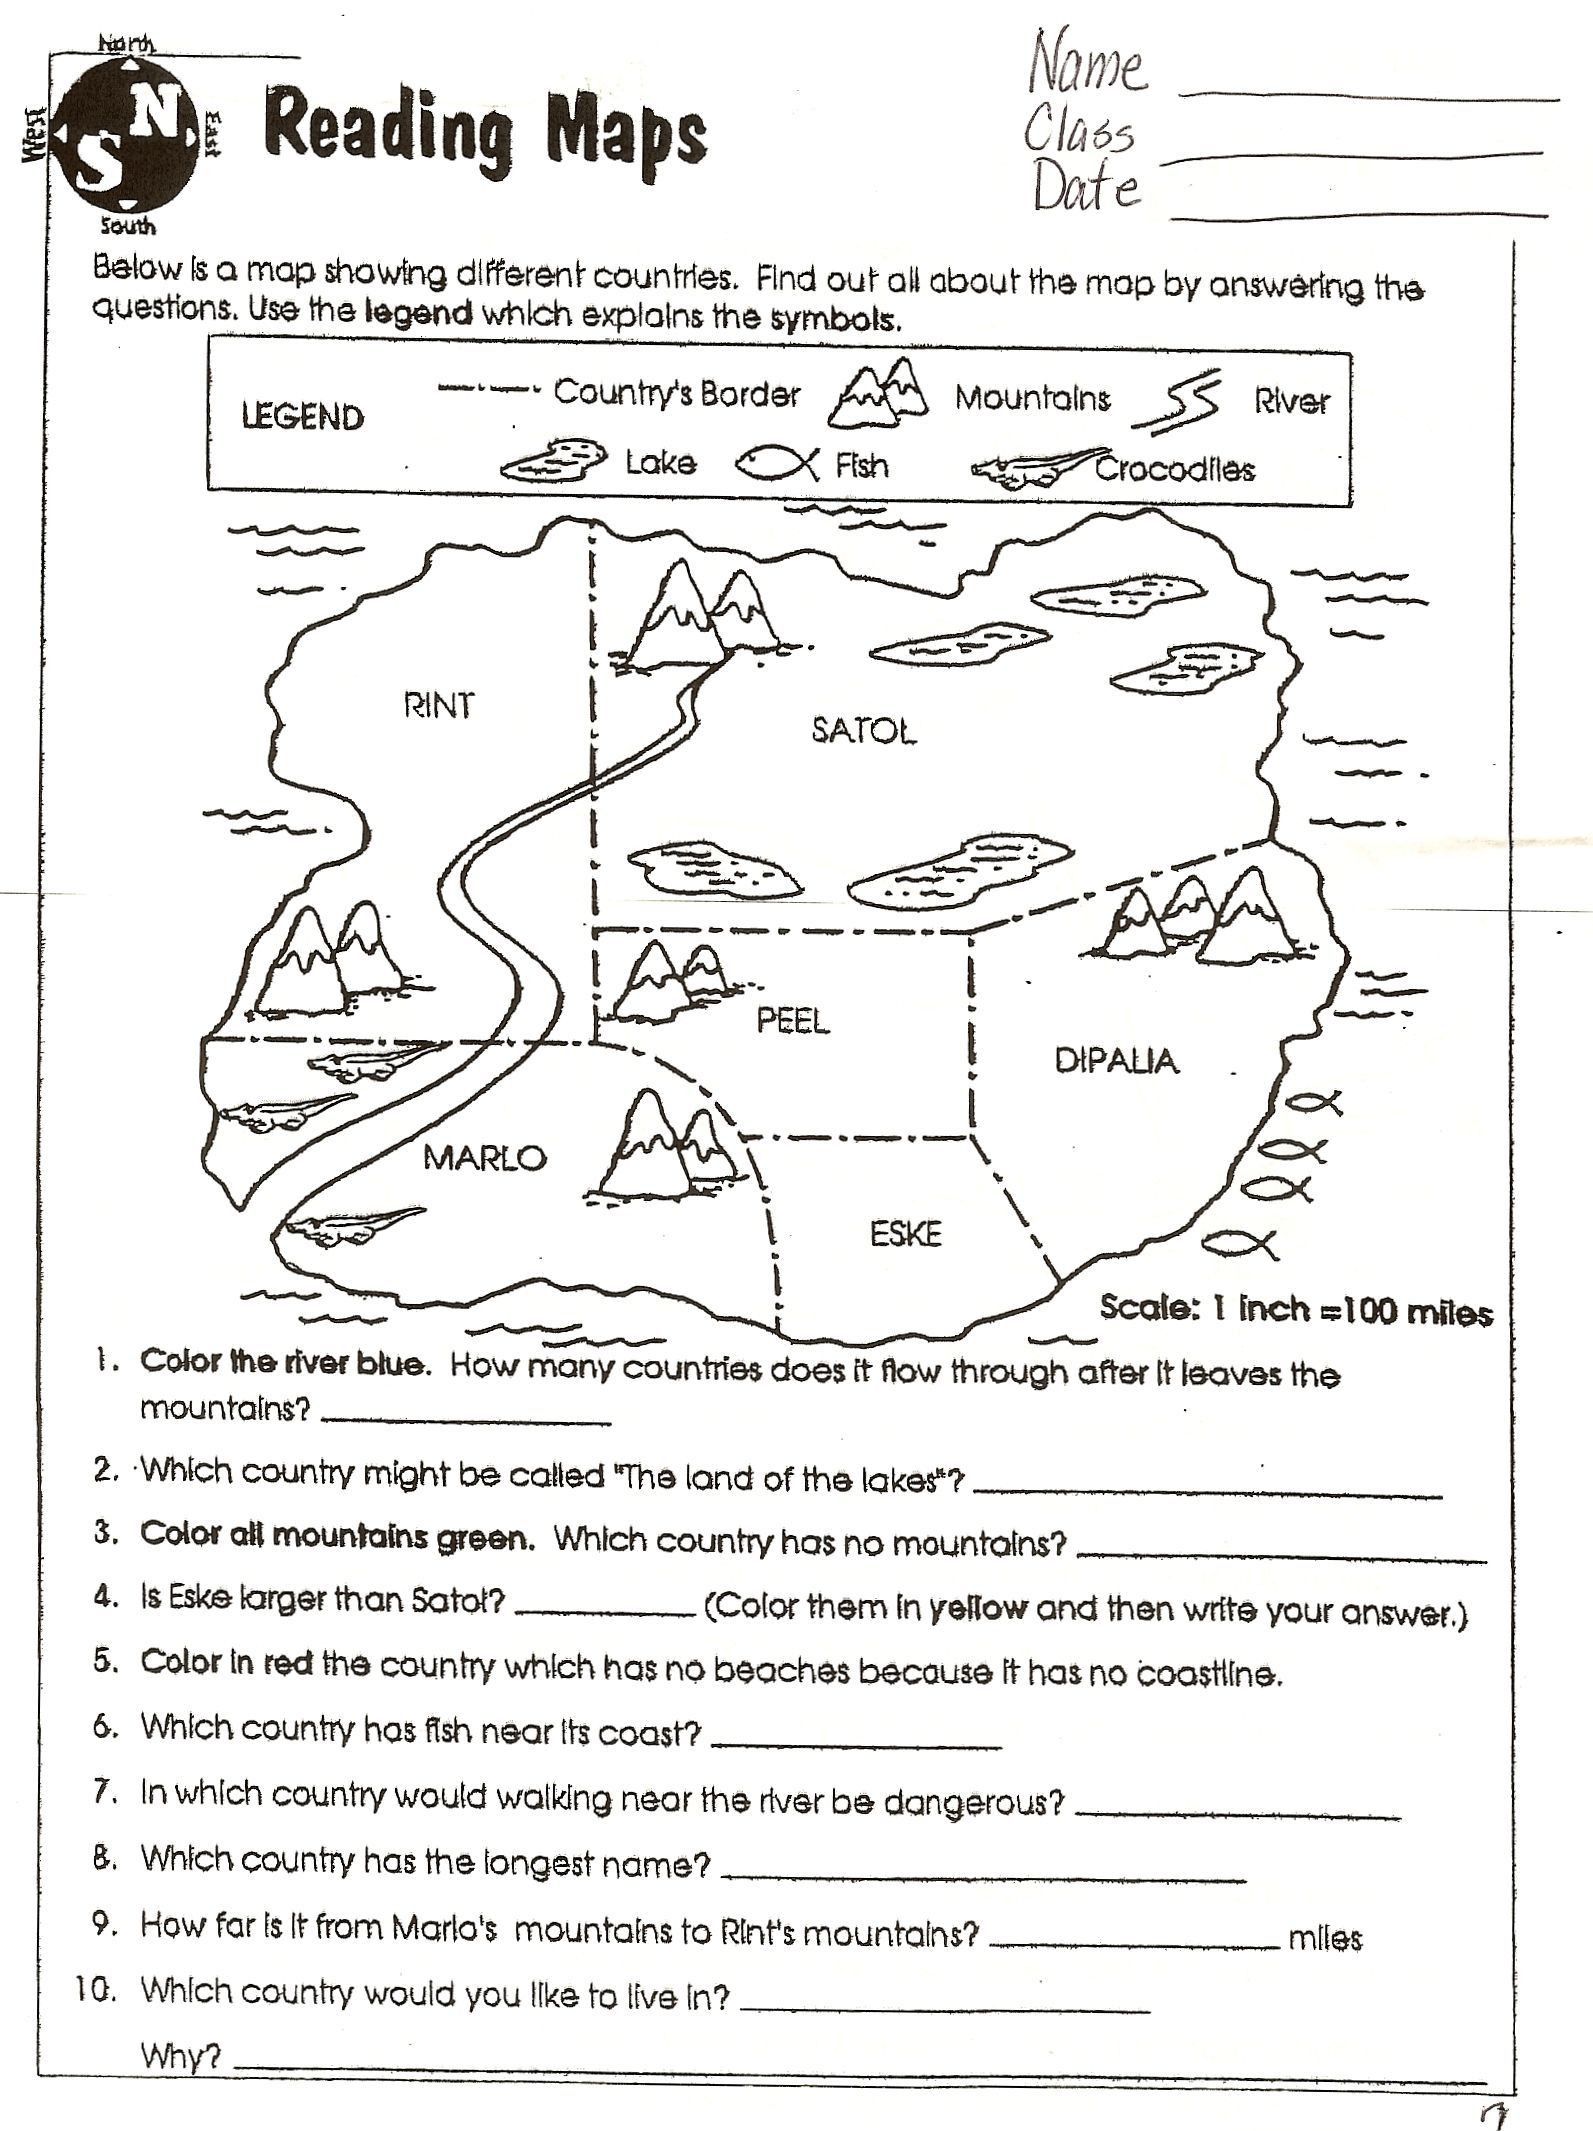 Social Studies Worksheets 6th Grade Reading Worksheets Grade 6